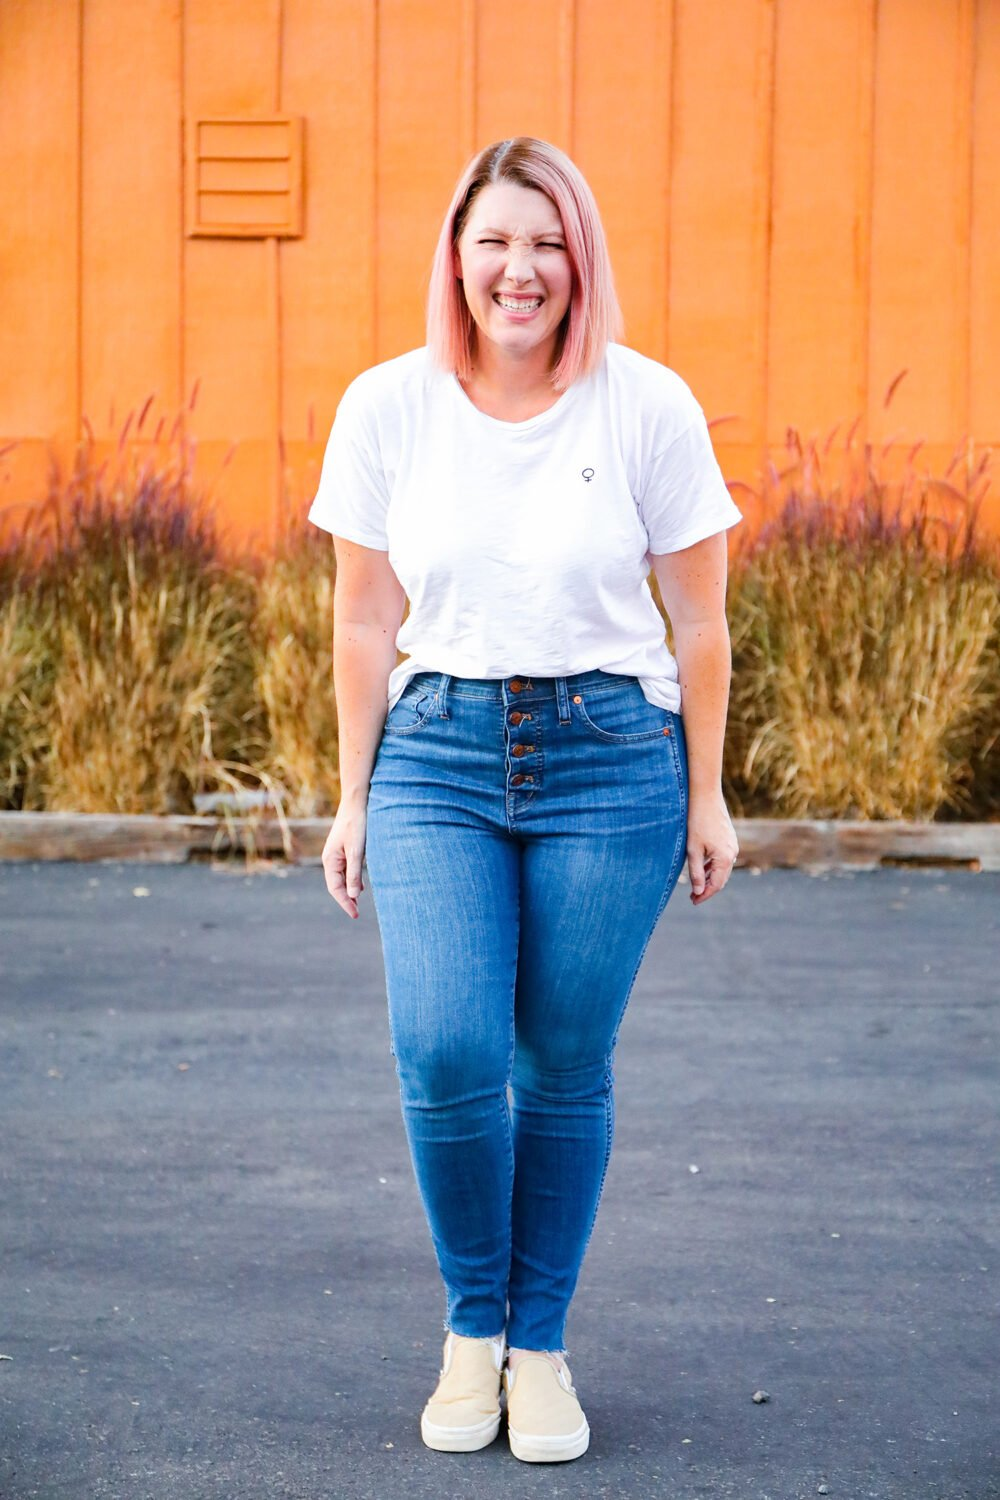 Looking for the BEST high waisted jeans for a pear shape? These fit like a DREAM!